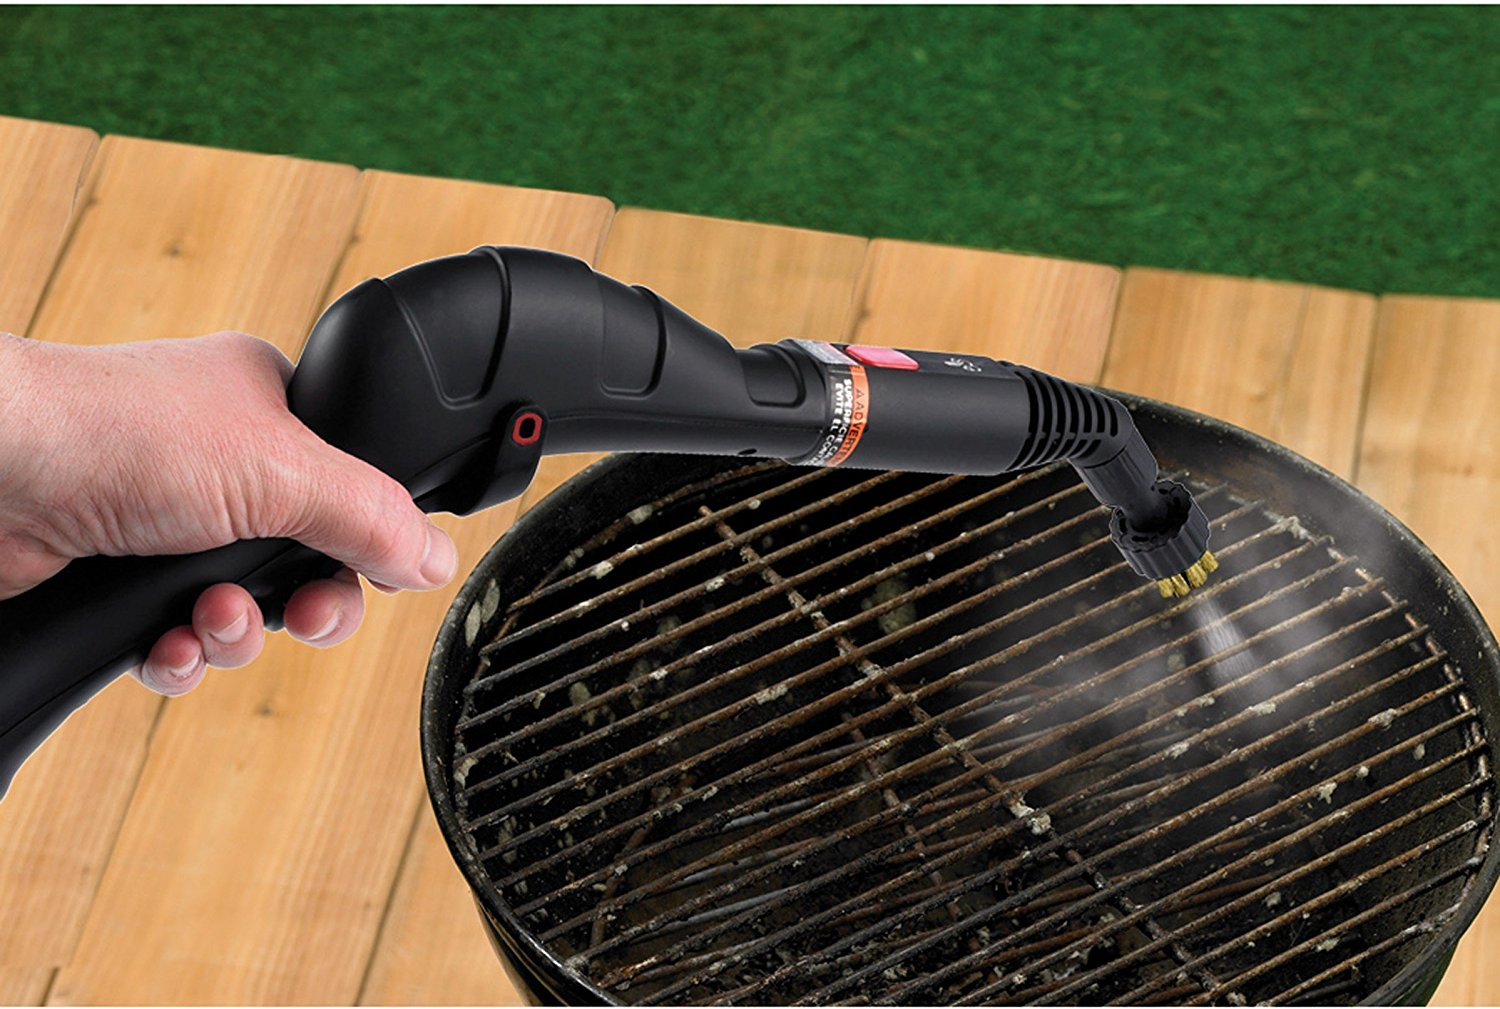 cleaning grill with steam